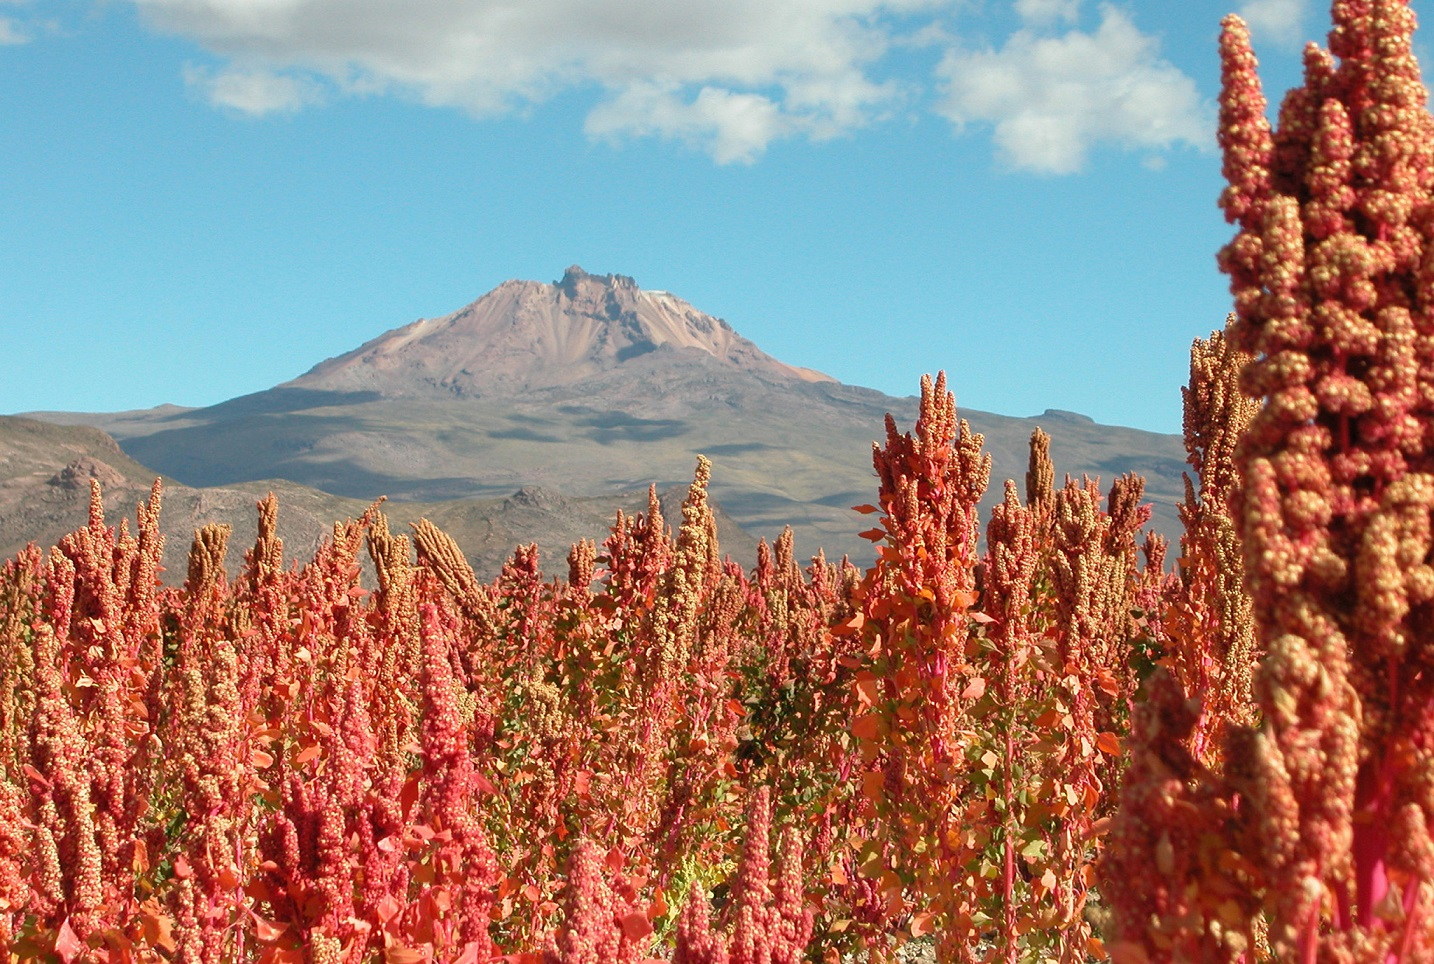 Quinoa Real grown near Uyuni on the Bolivian Altiplano (3653 m). Mt. Tunupa in the background. Photographer ?